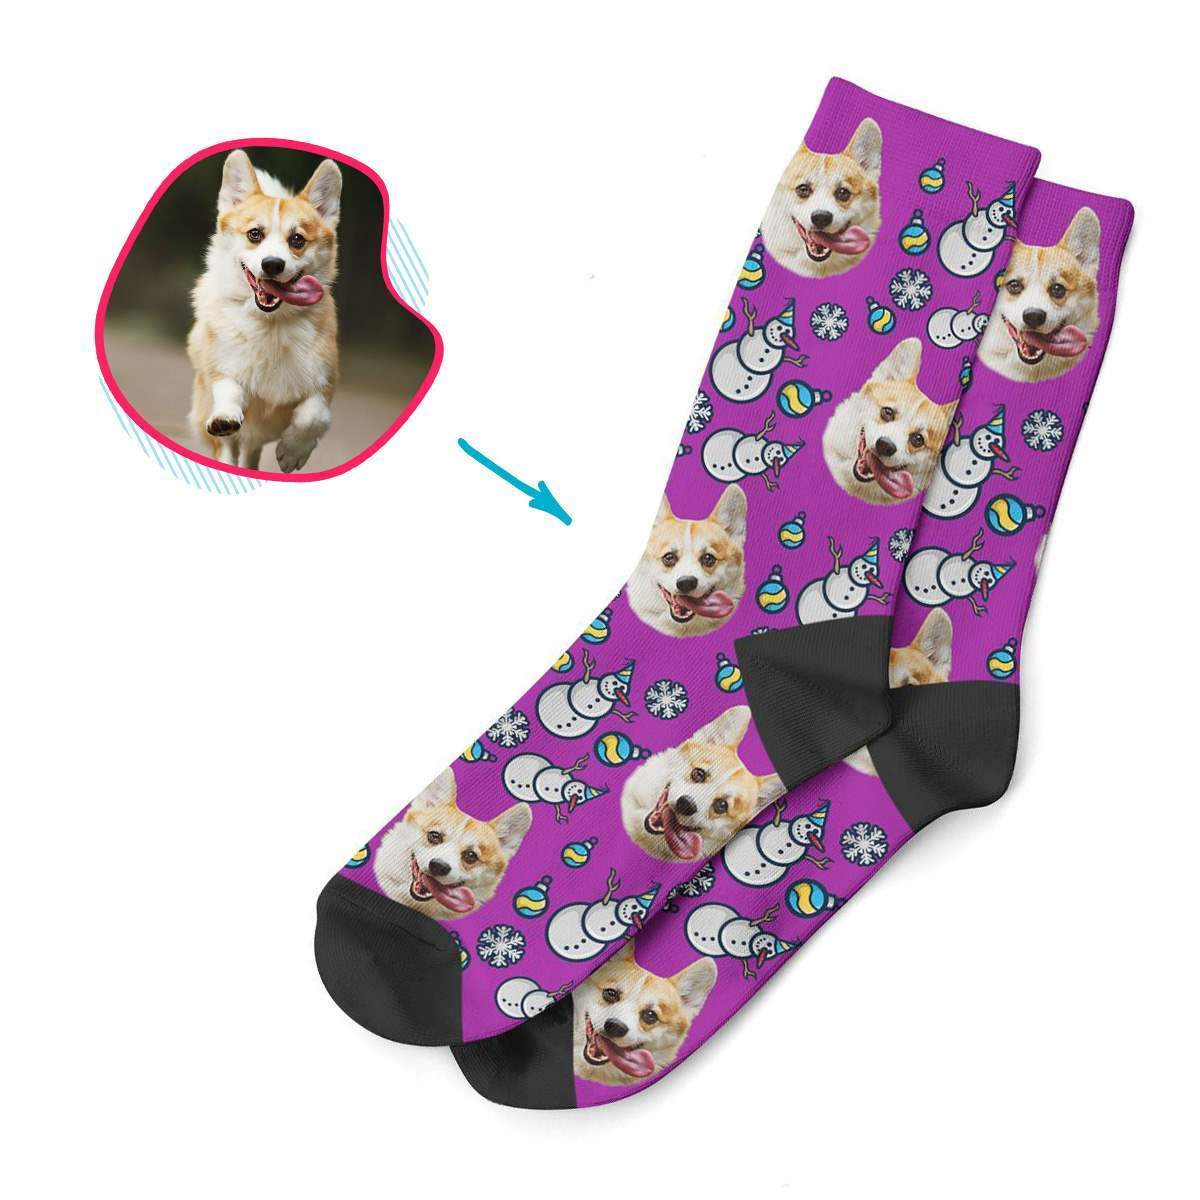 purple Snowman socks personalized with photo of face printed on them